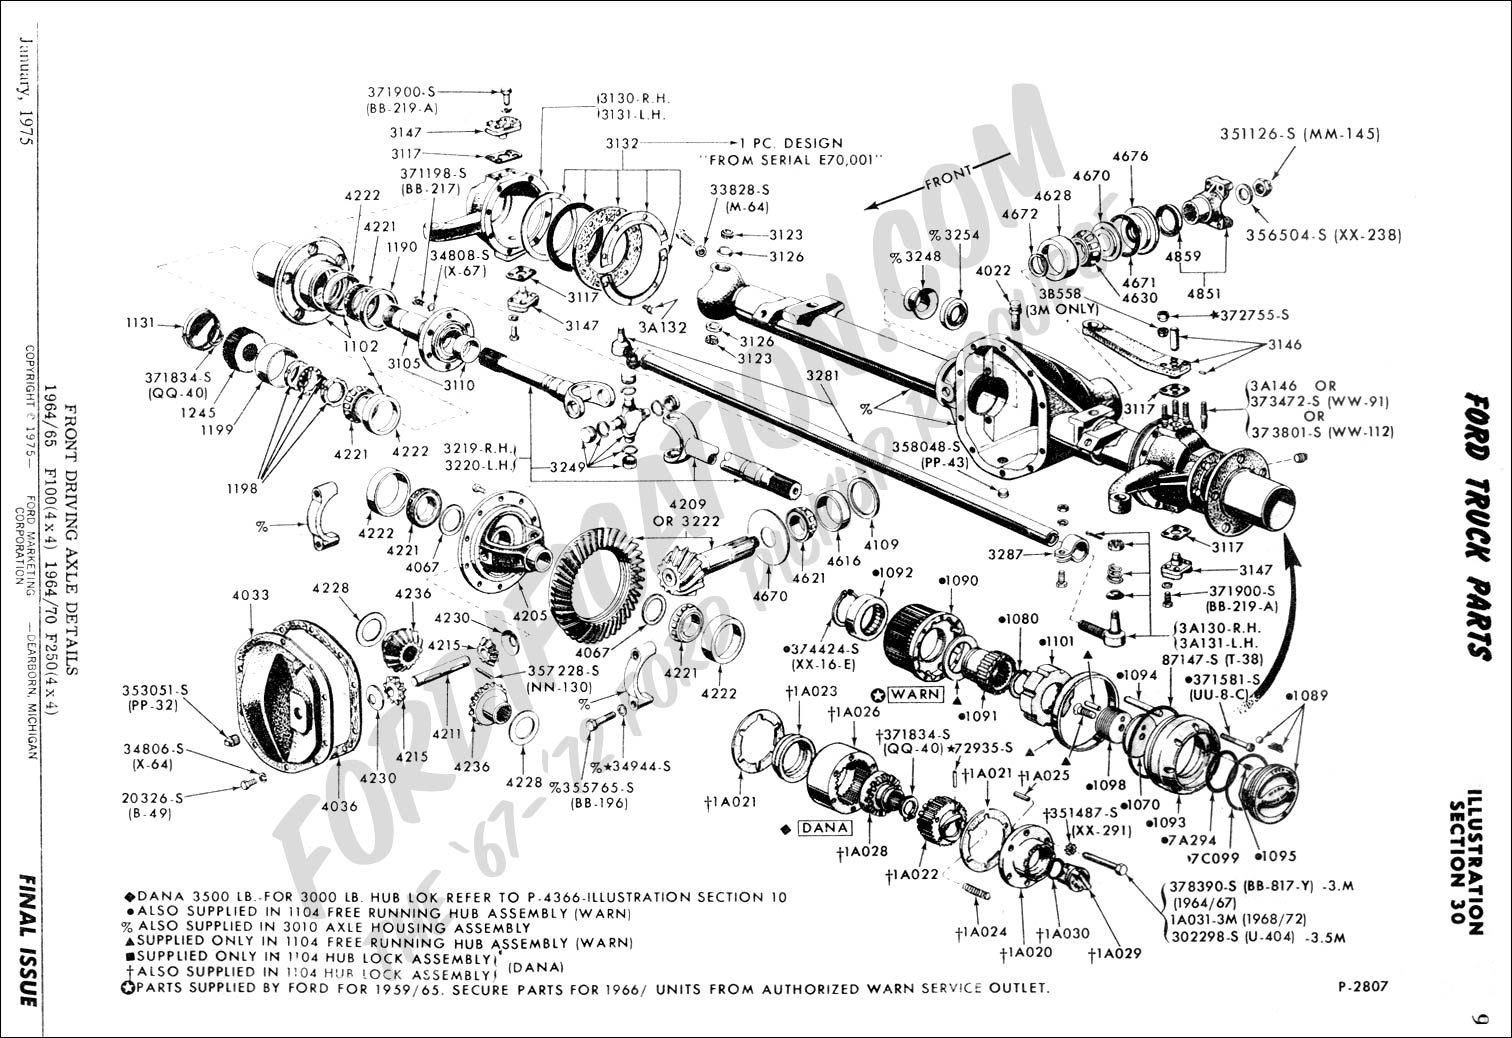 Electrical Wiring Diagram 95 Isuzu also 1983 1988 Ford Bronco Ii Start Ignition in addition 1154494 Vin Decode Fearing A Frankenstein as well Isuzu Rodeo Brake Parts additionally RepairGuideContent. on 1996 nissan pickup tail light diagram